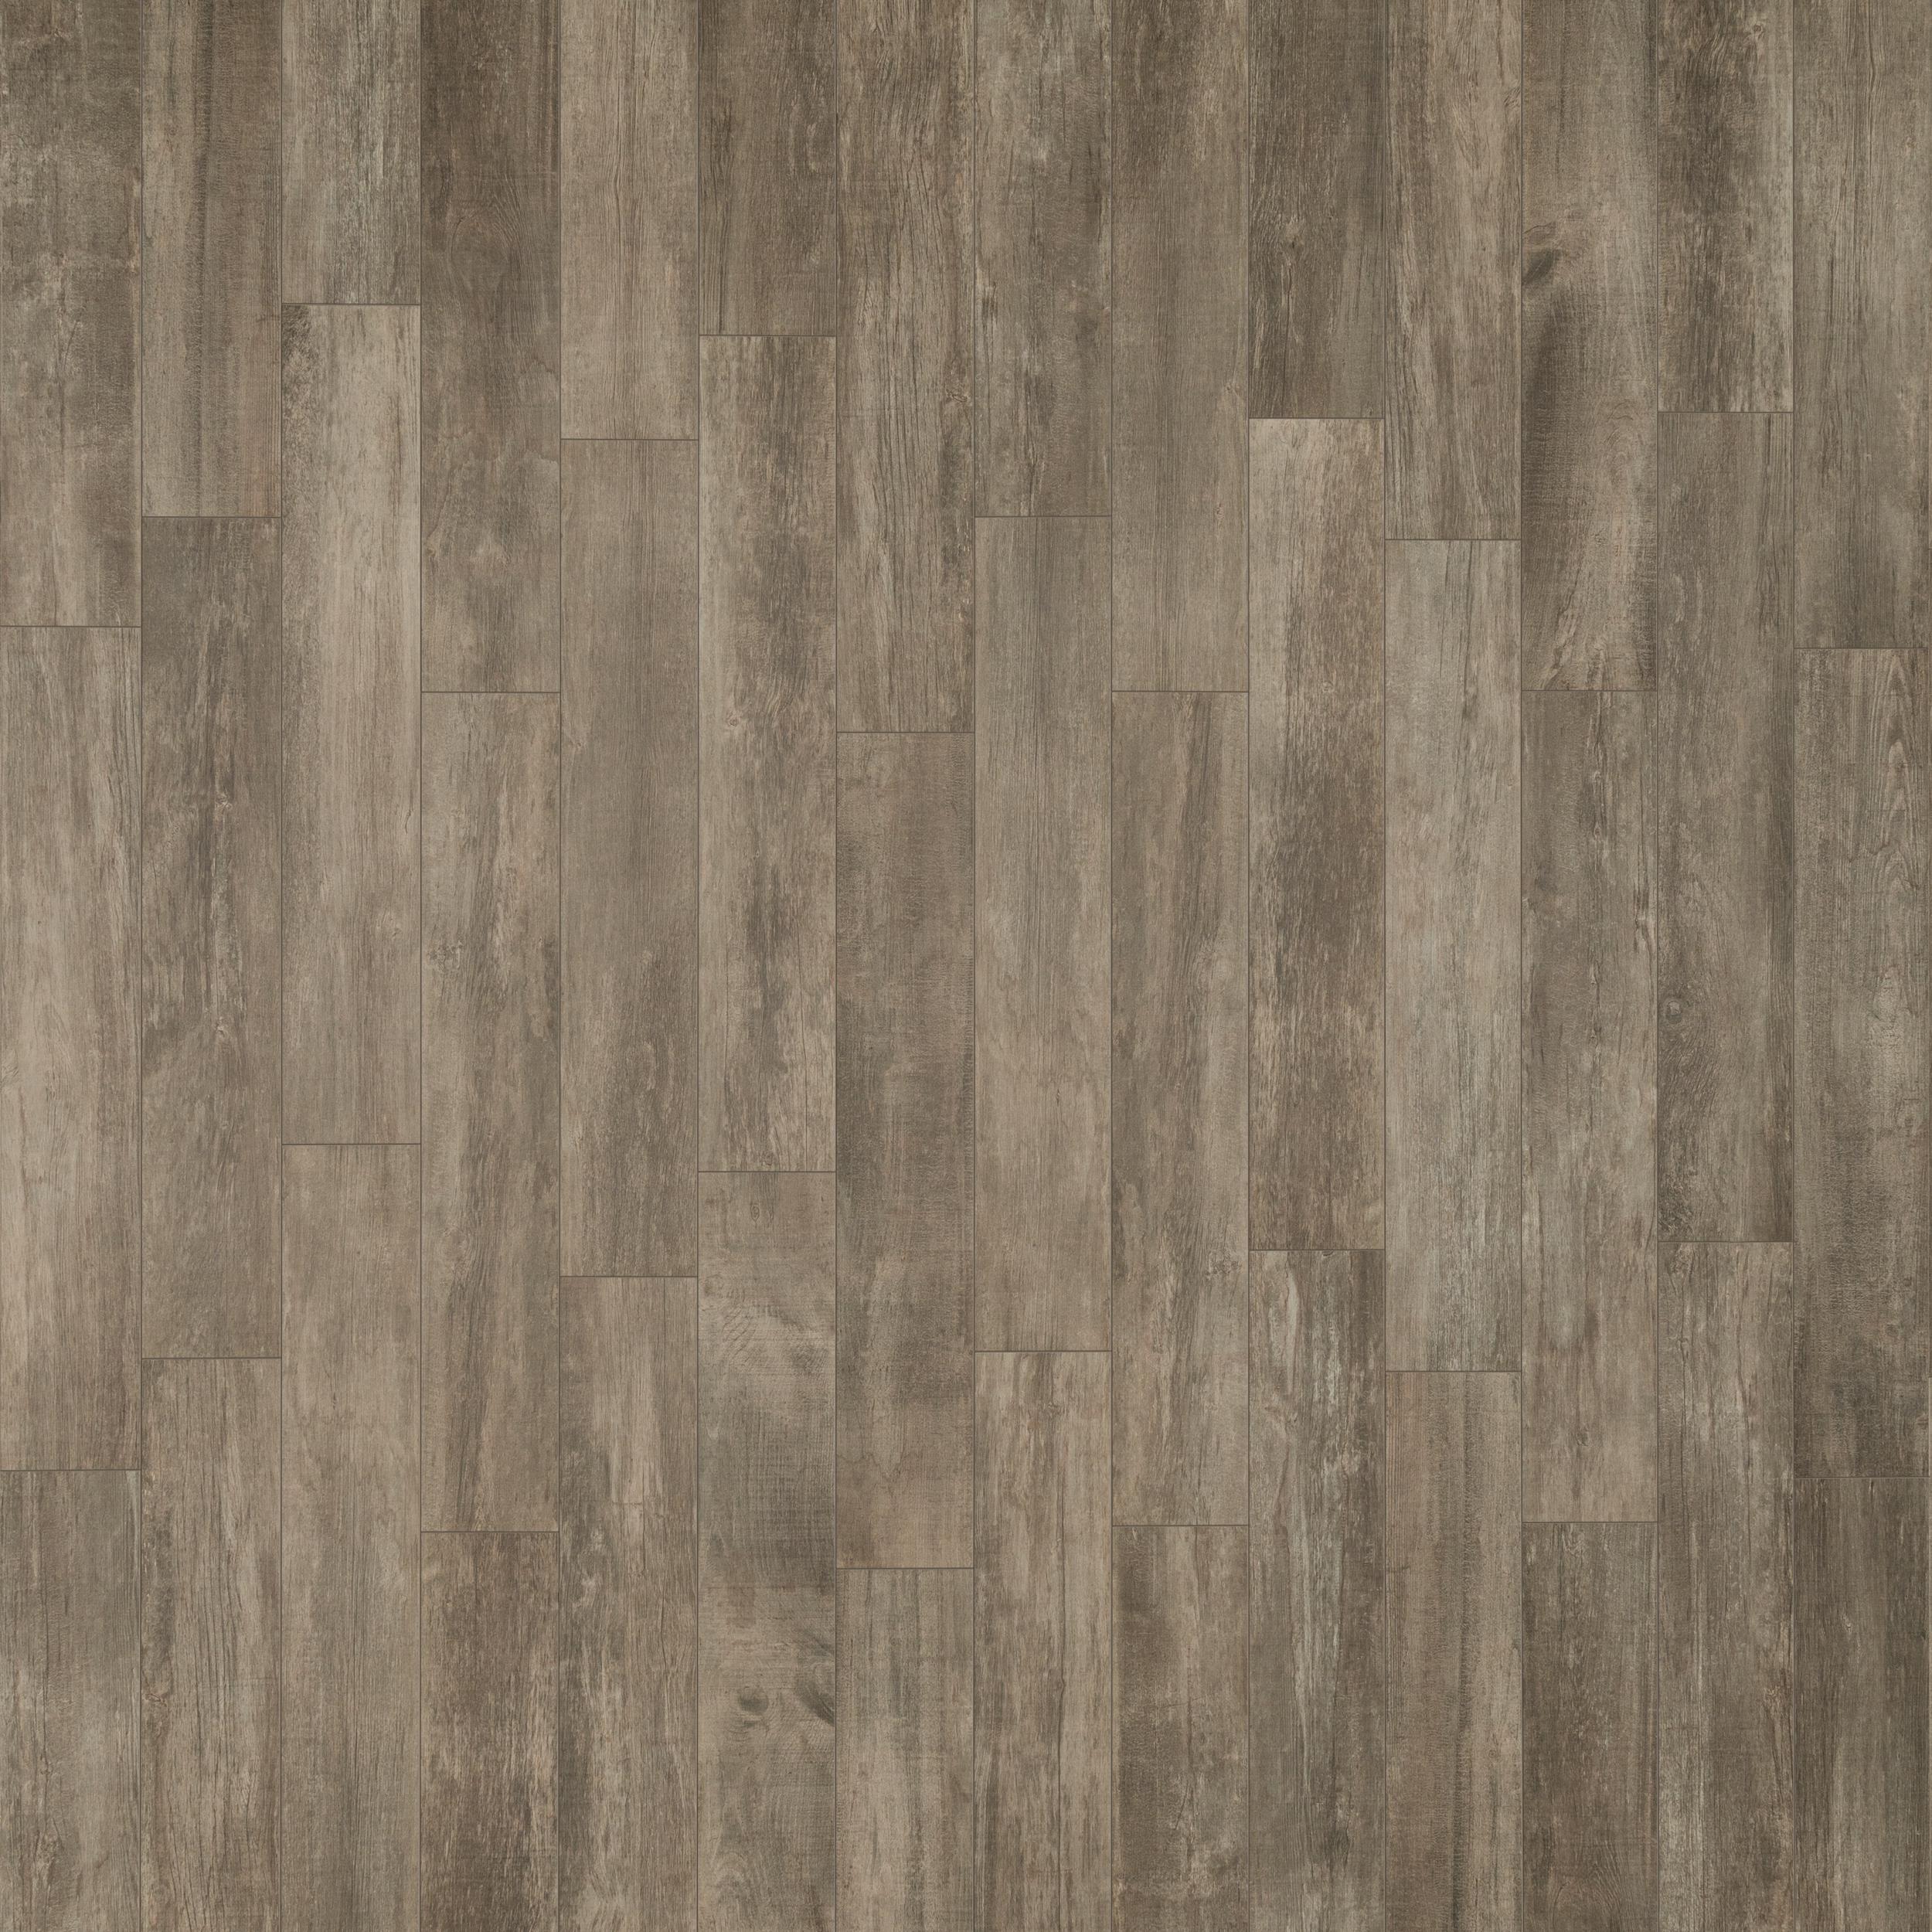 Cabane Tobacco Wood Look Tile